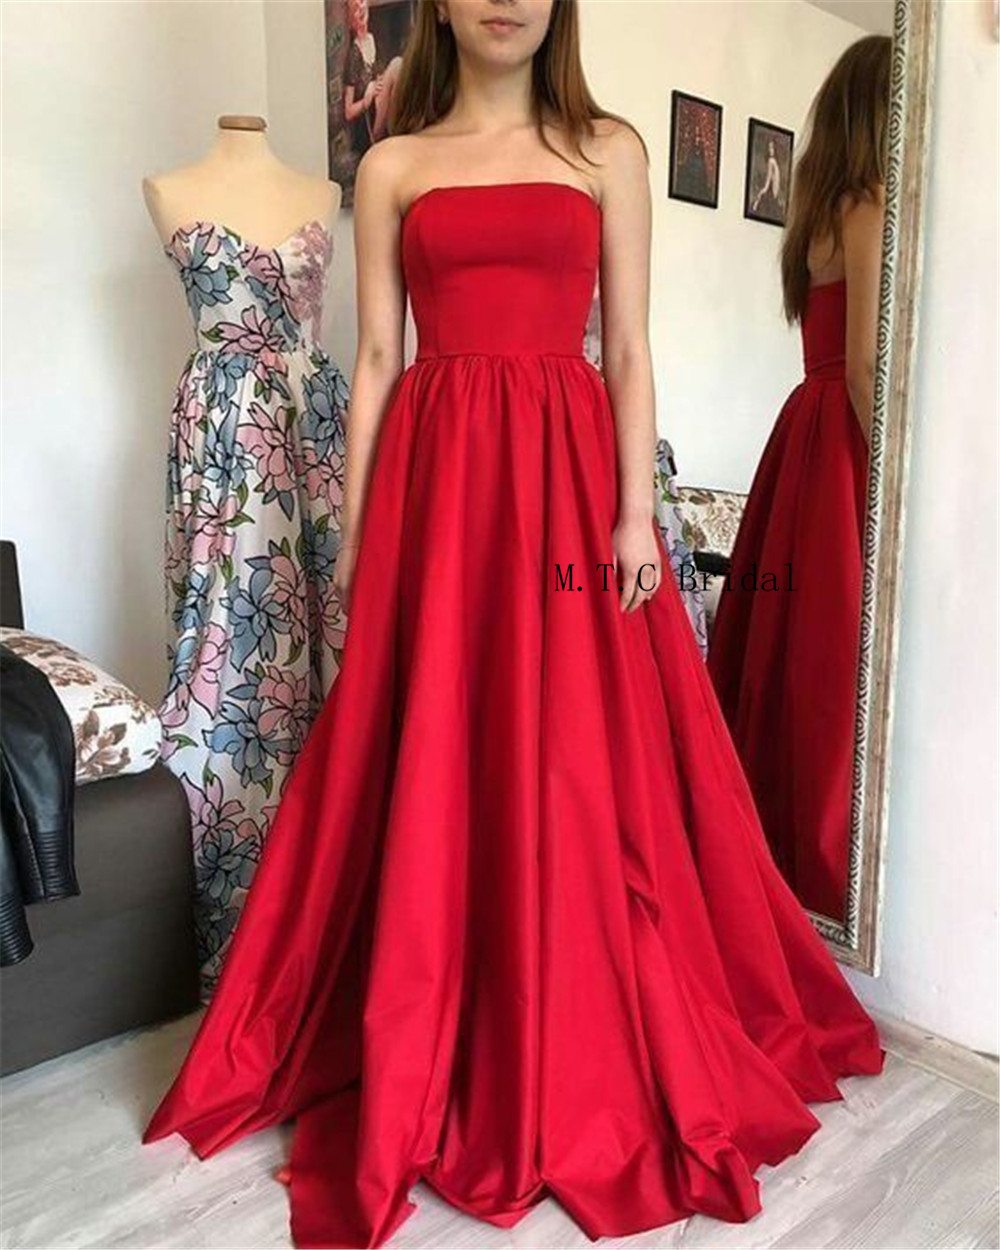 2019 Simple Red Long Dresses Prom Strapless A Line Floor Length Cheap Satin Evening Gowns Hot